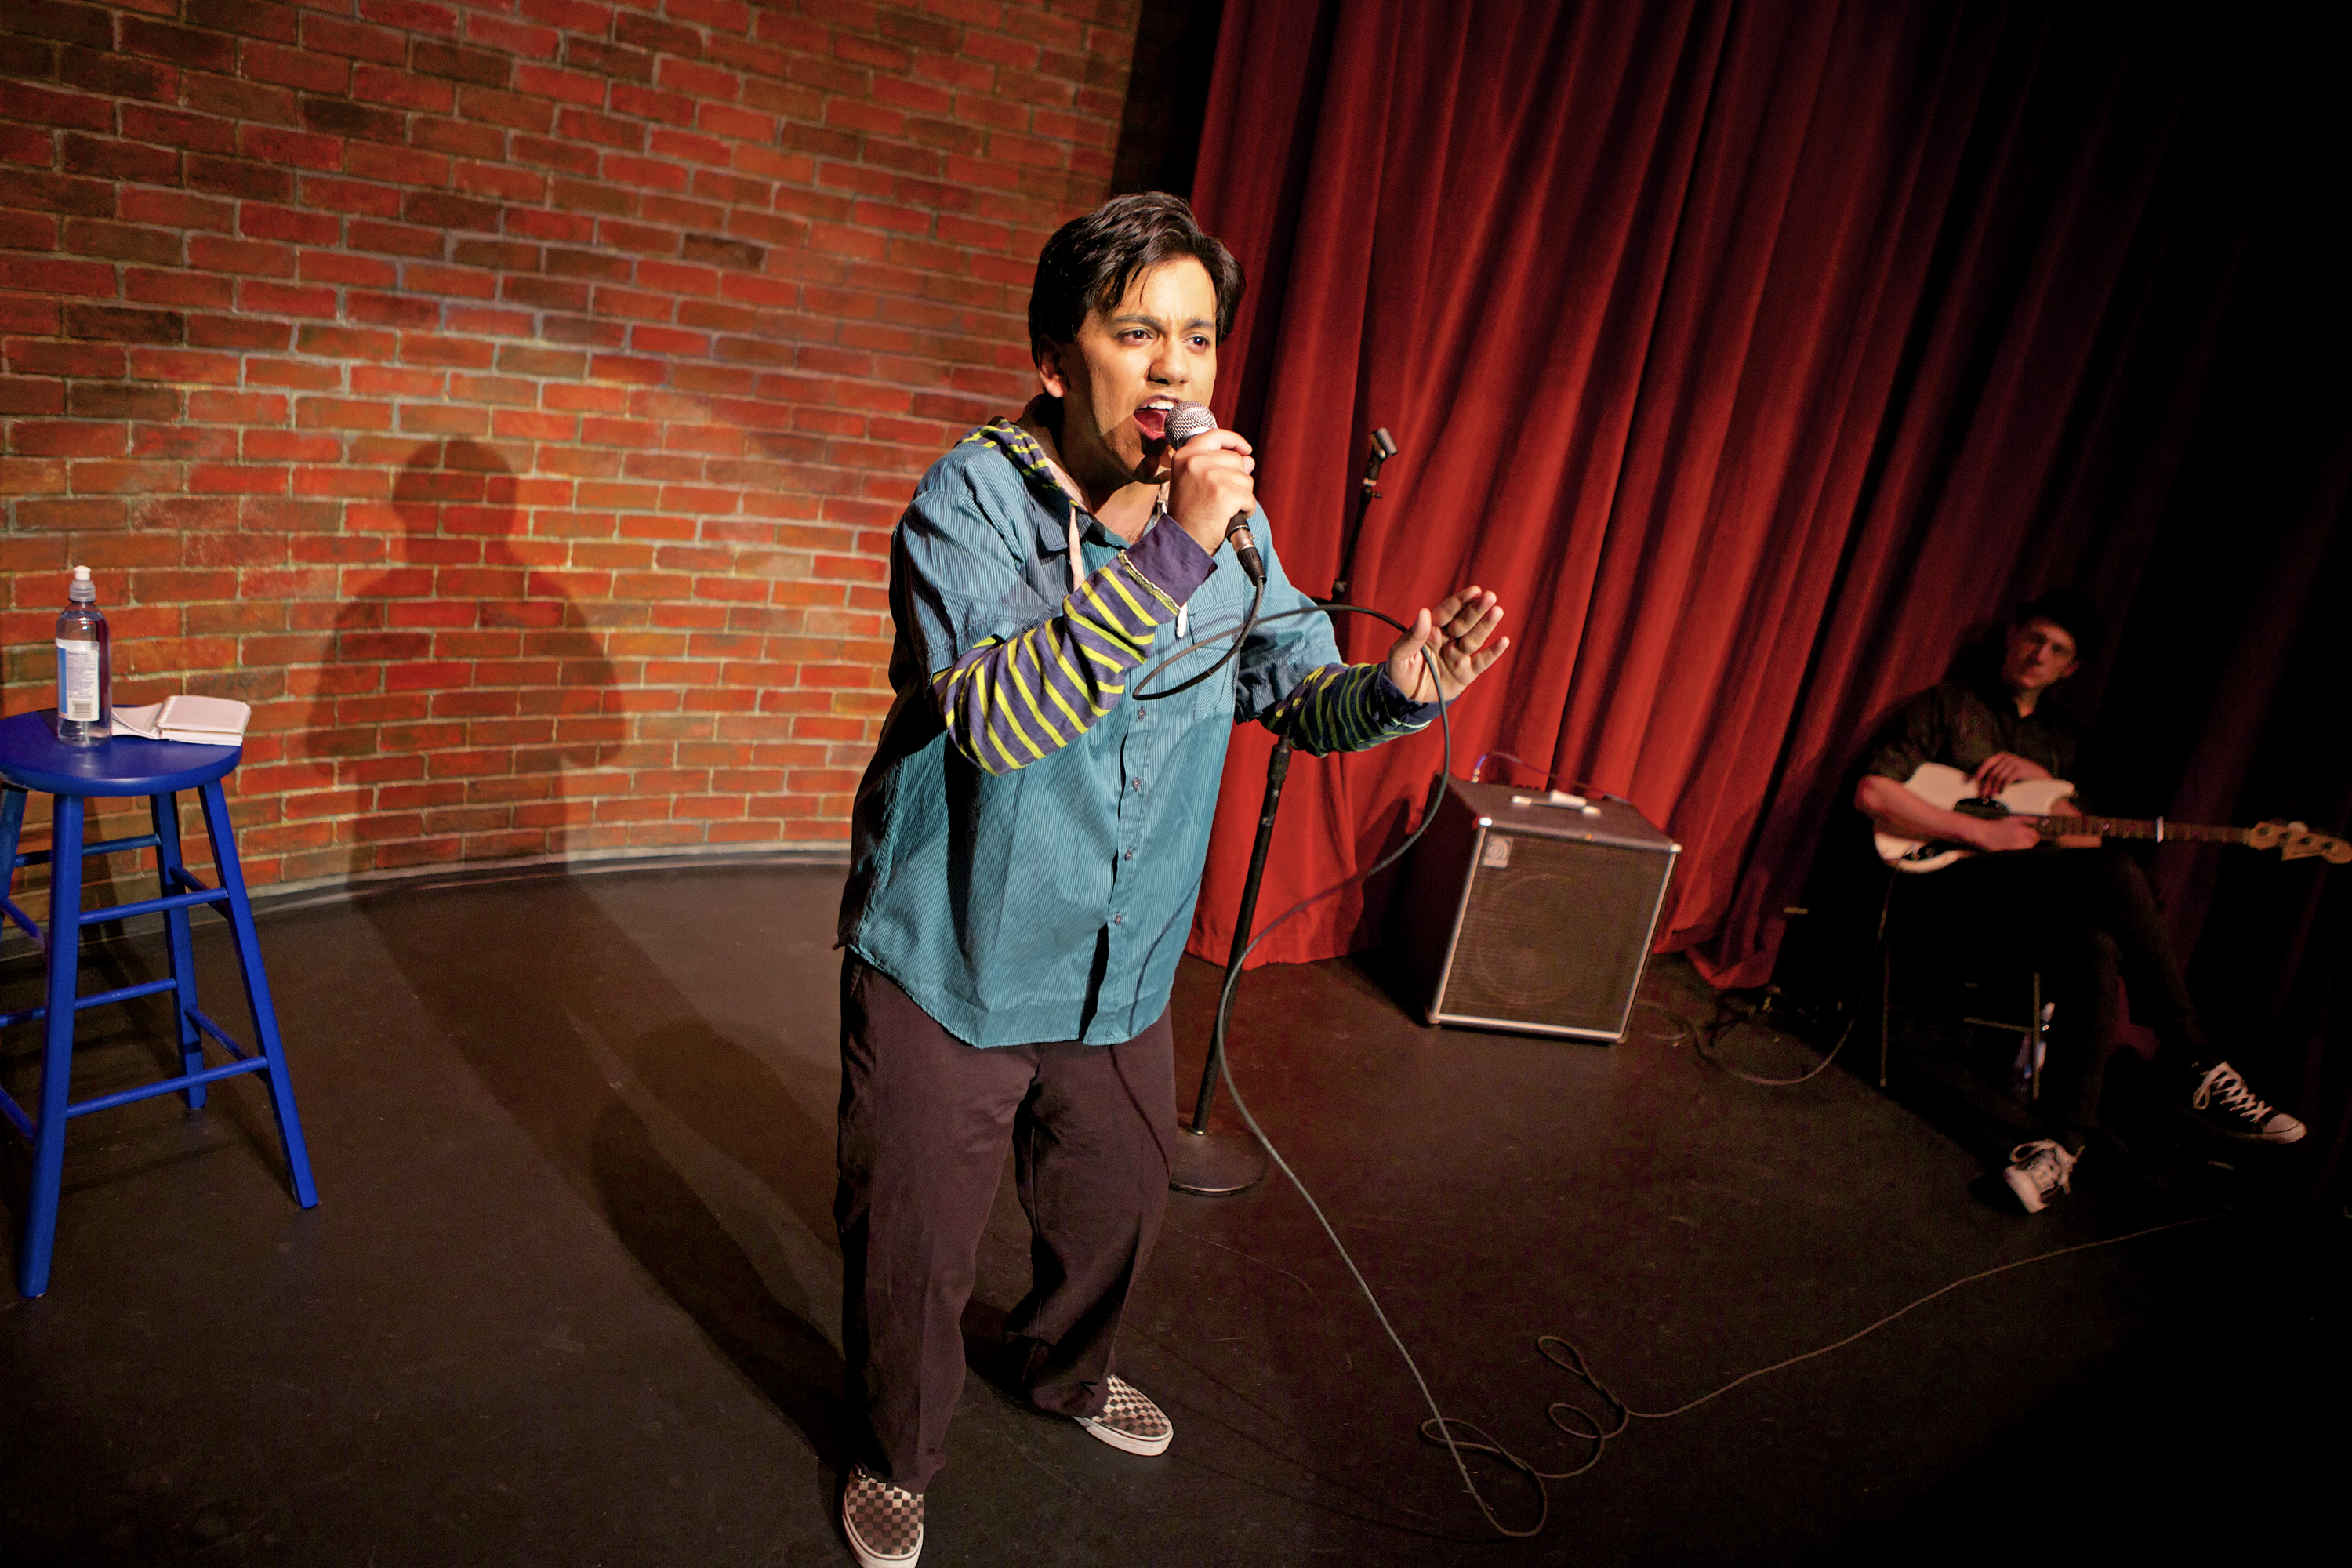 Simple Exhibition Stand Up Comedy : Crowded fire theater brahman i a one hijra stand up